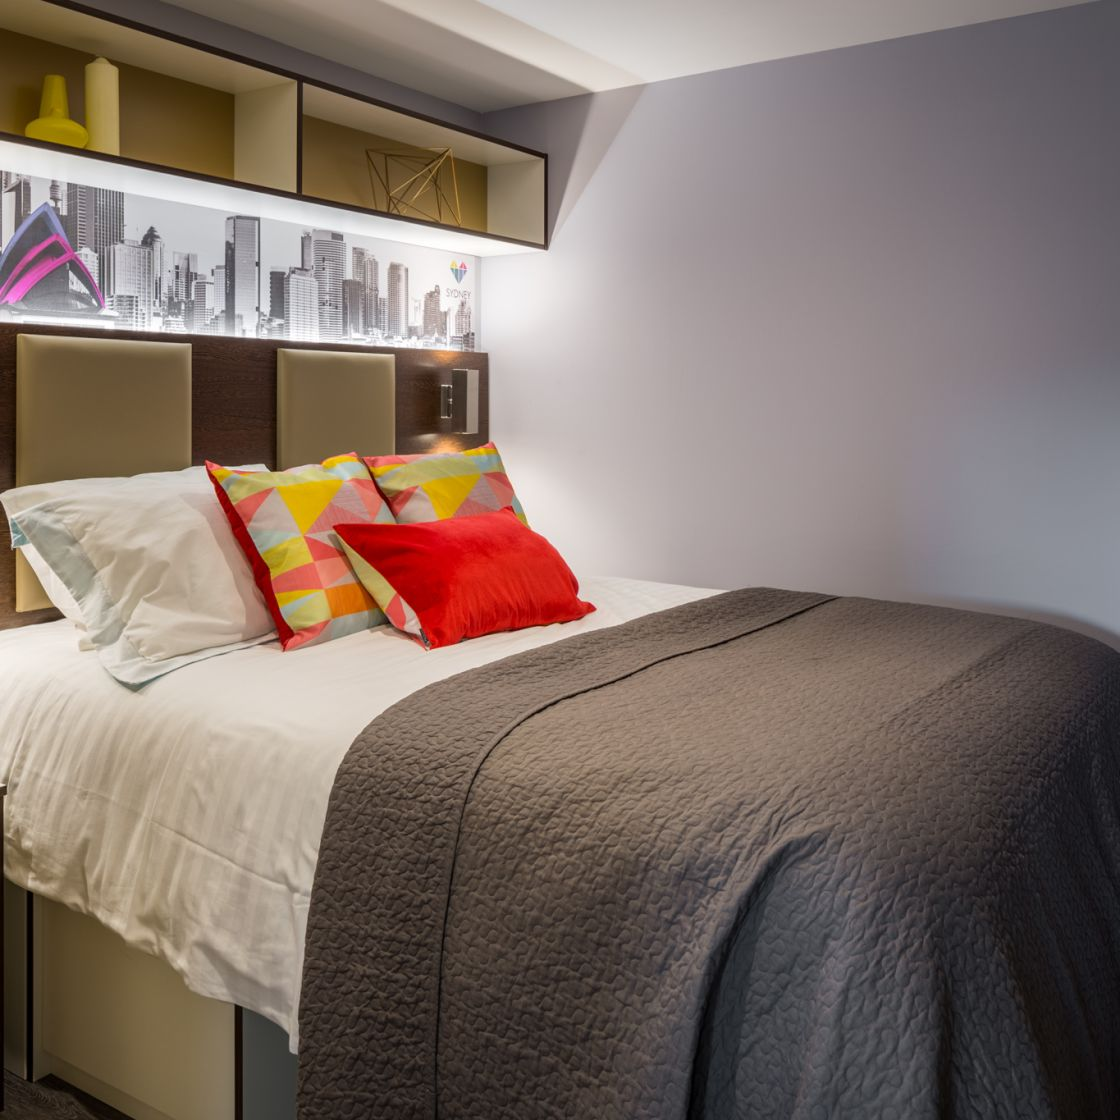 Grande Student Apartment in Leeds with King Size bed. IconInc, The Glassworks